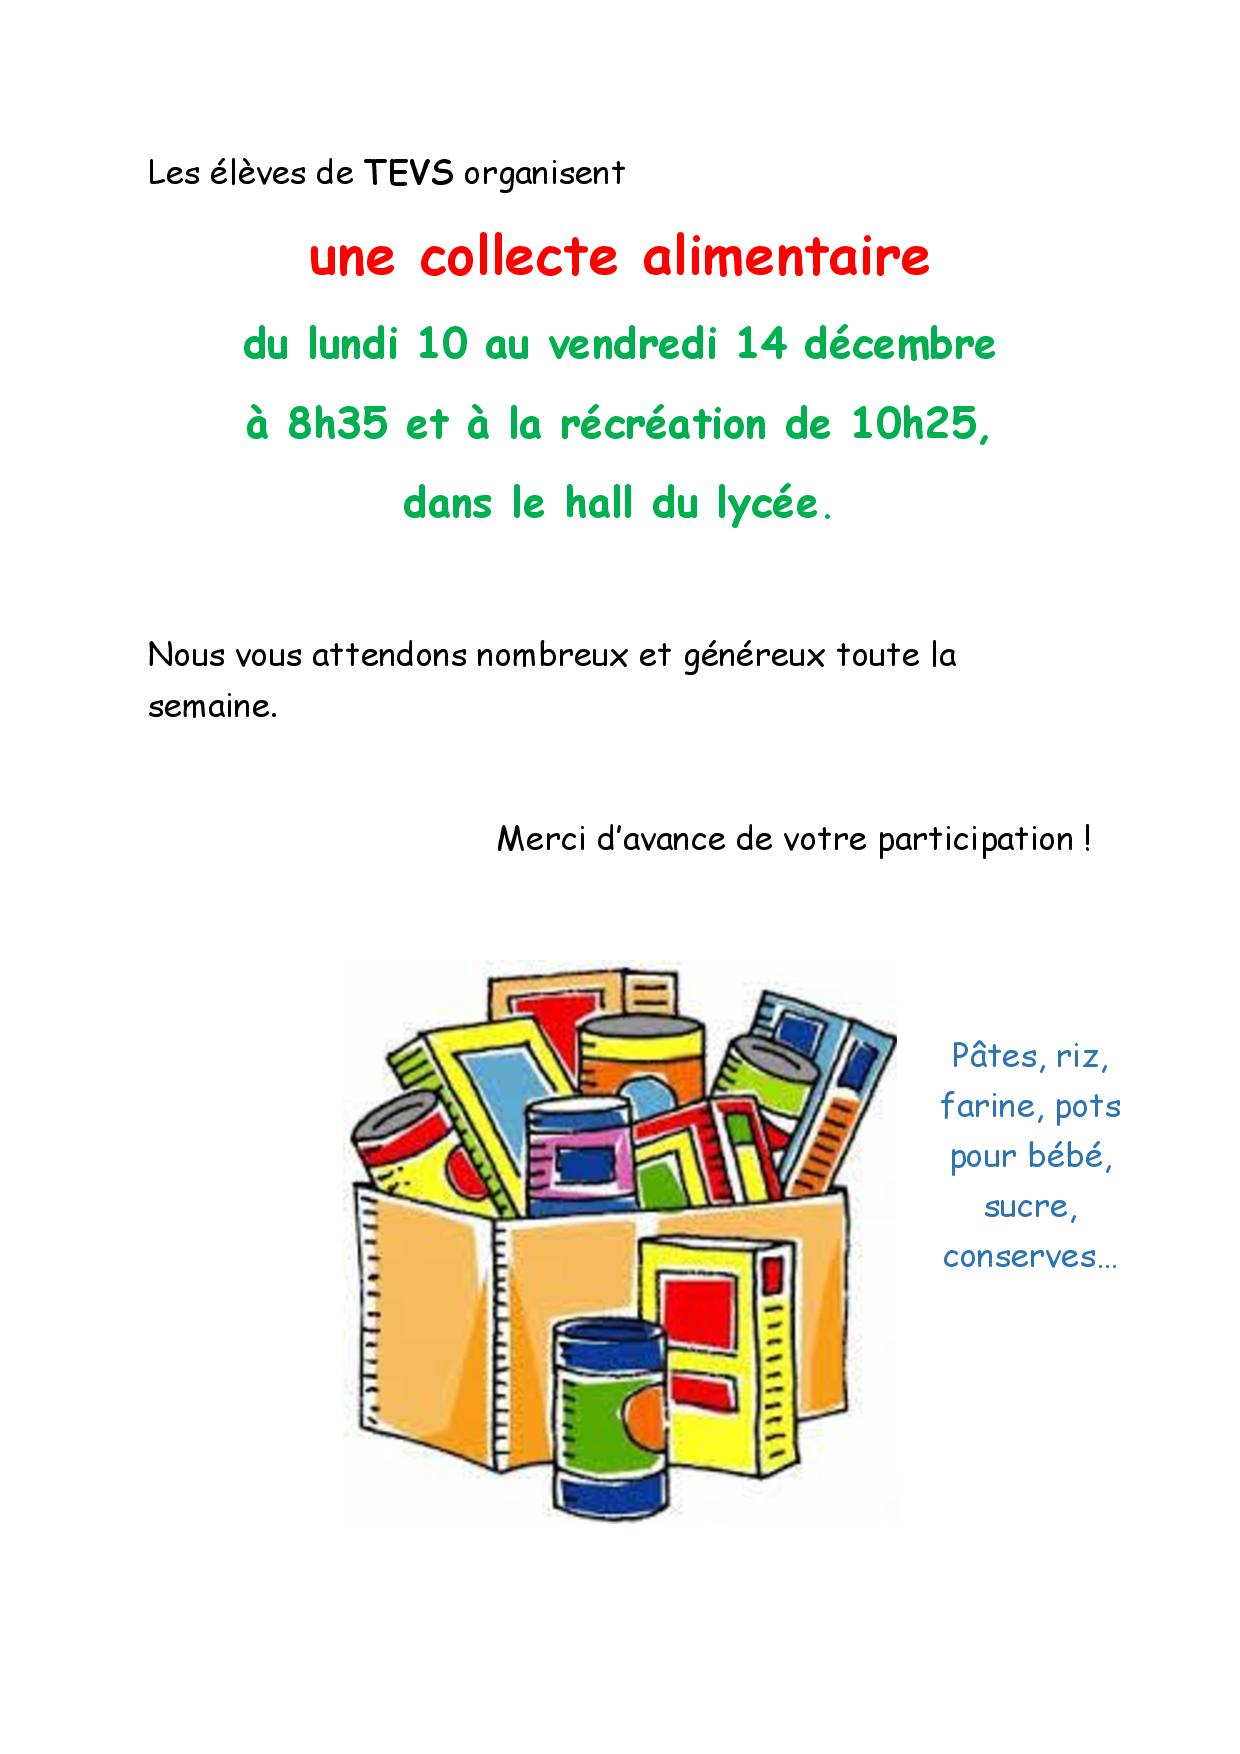 annonce_collecte_alimentaire_version_2_TEVS-page-001.jpg